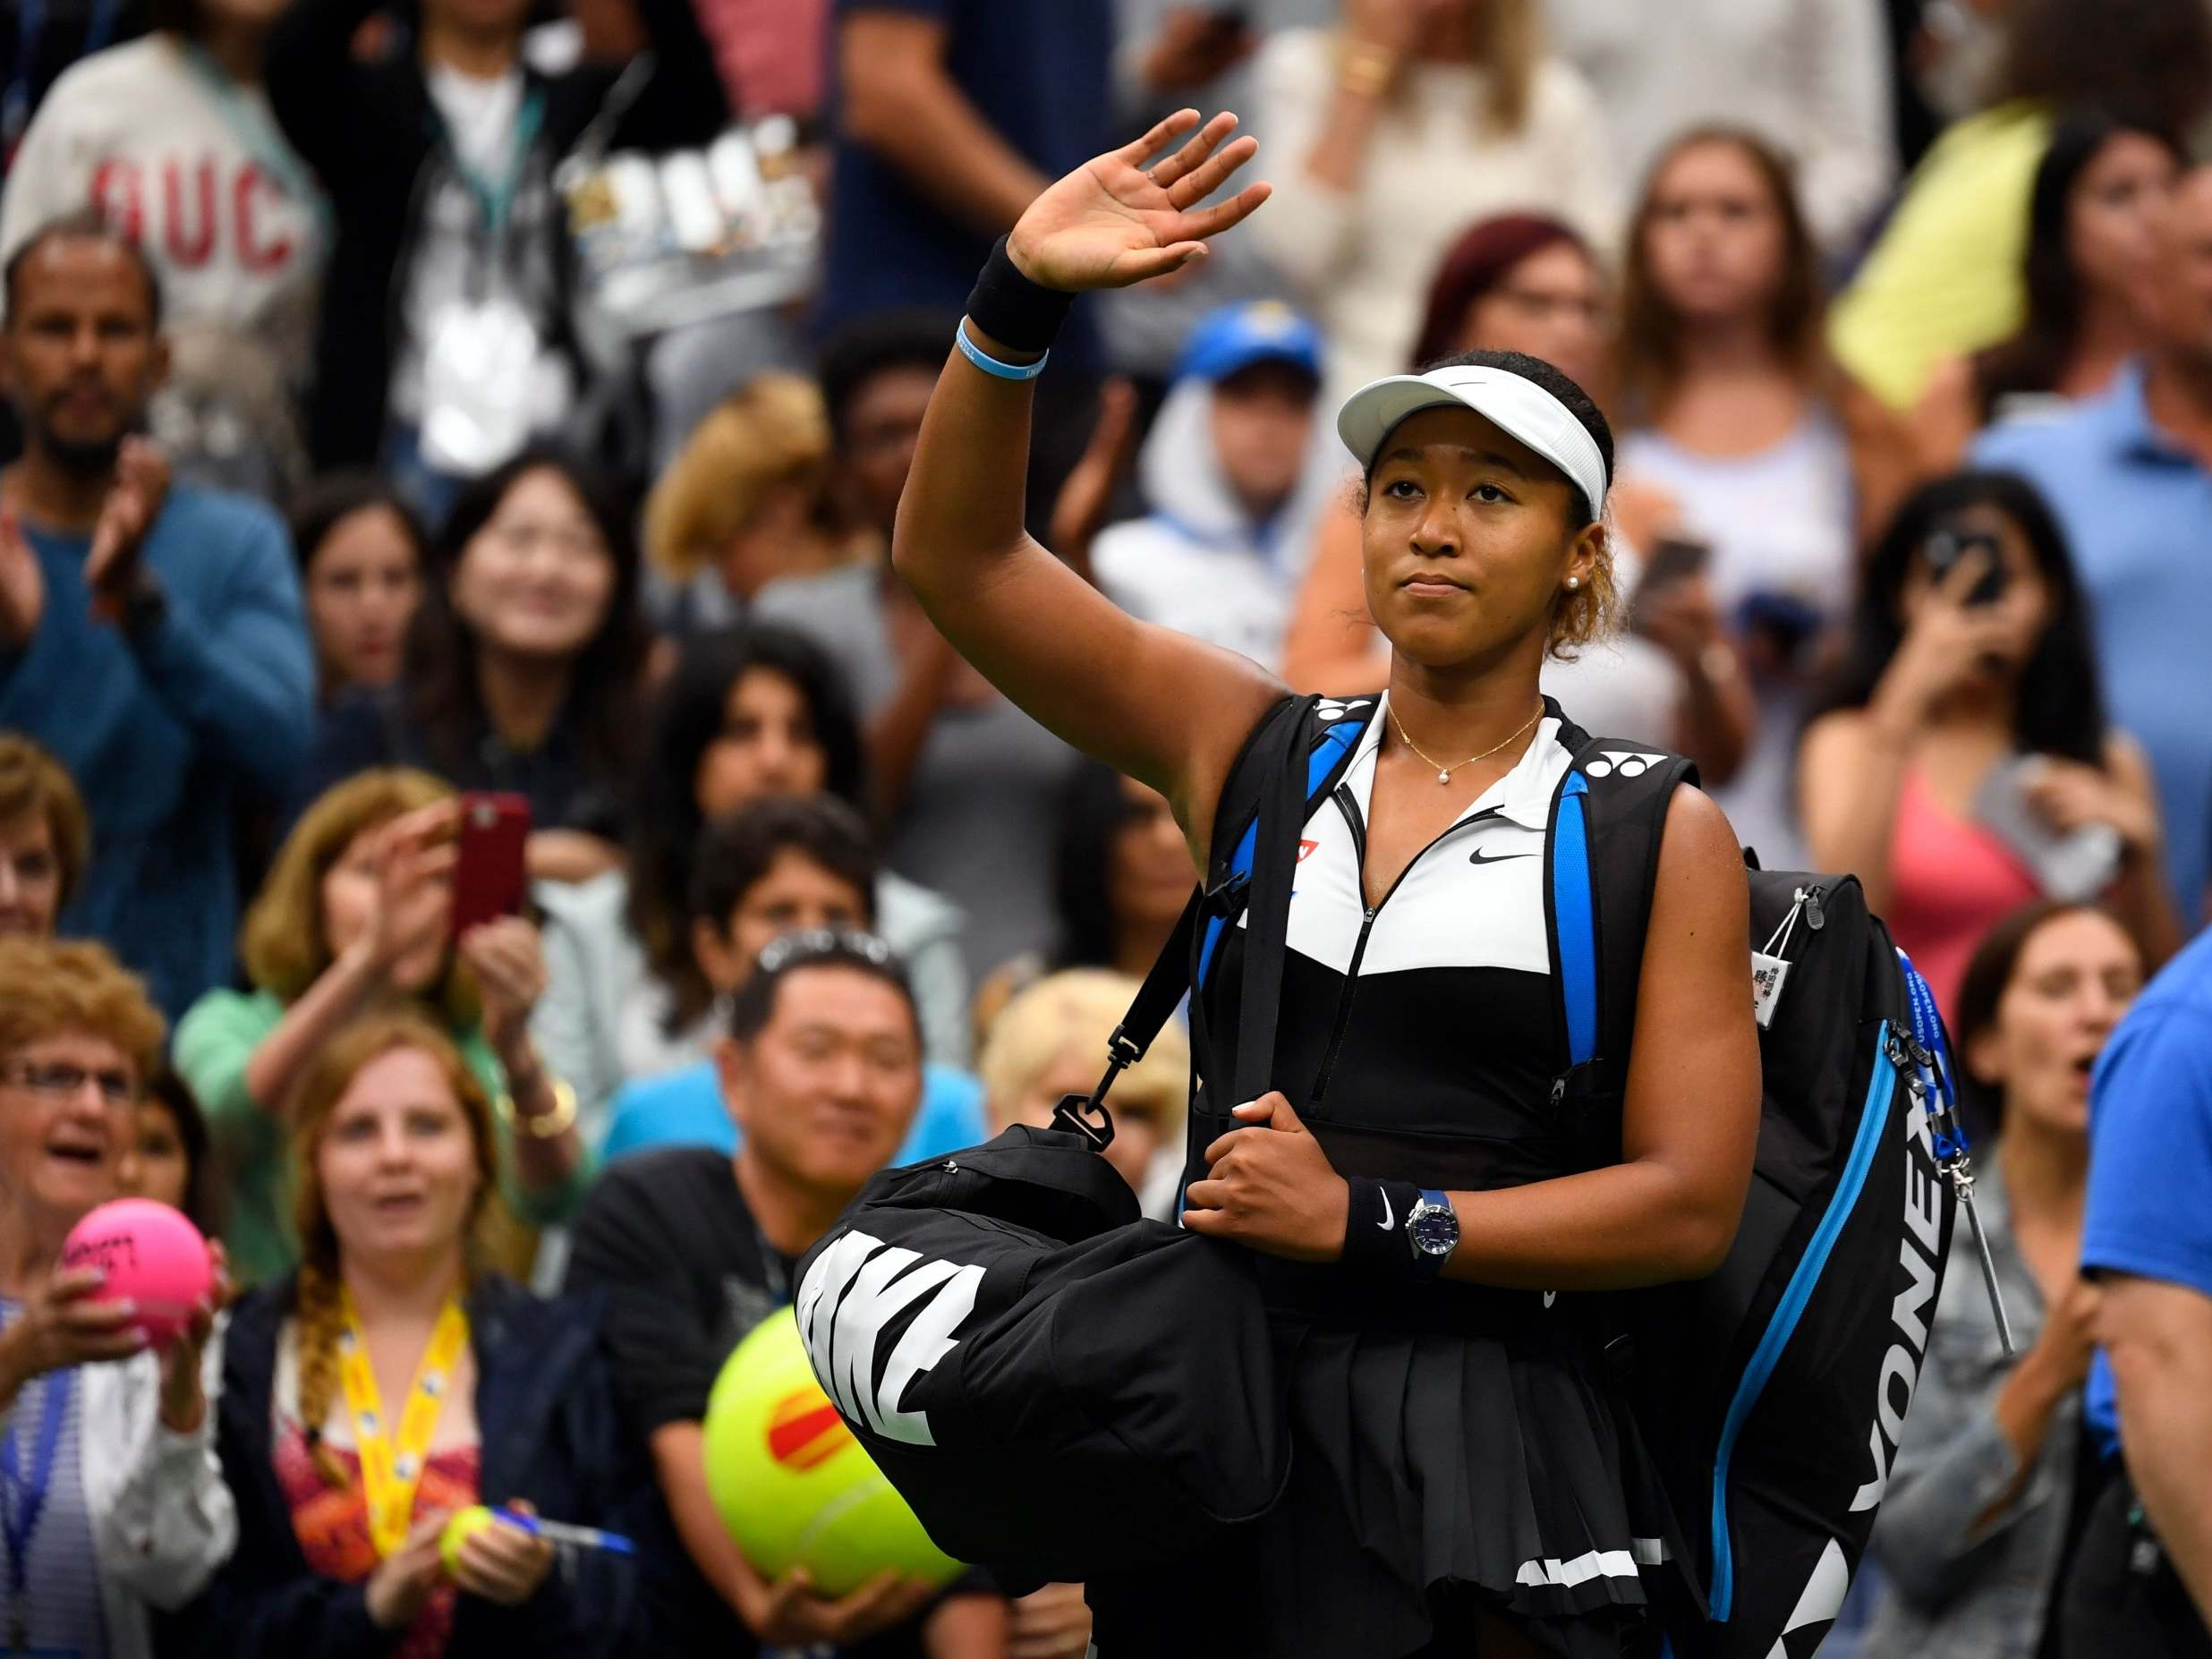 US Open 2019: Naomi Osaka crashes out in New York as Belinda Bencic secures straight sets victory